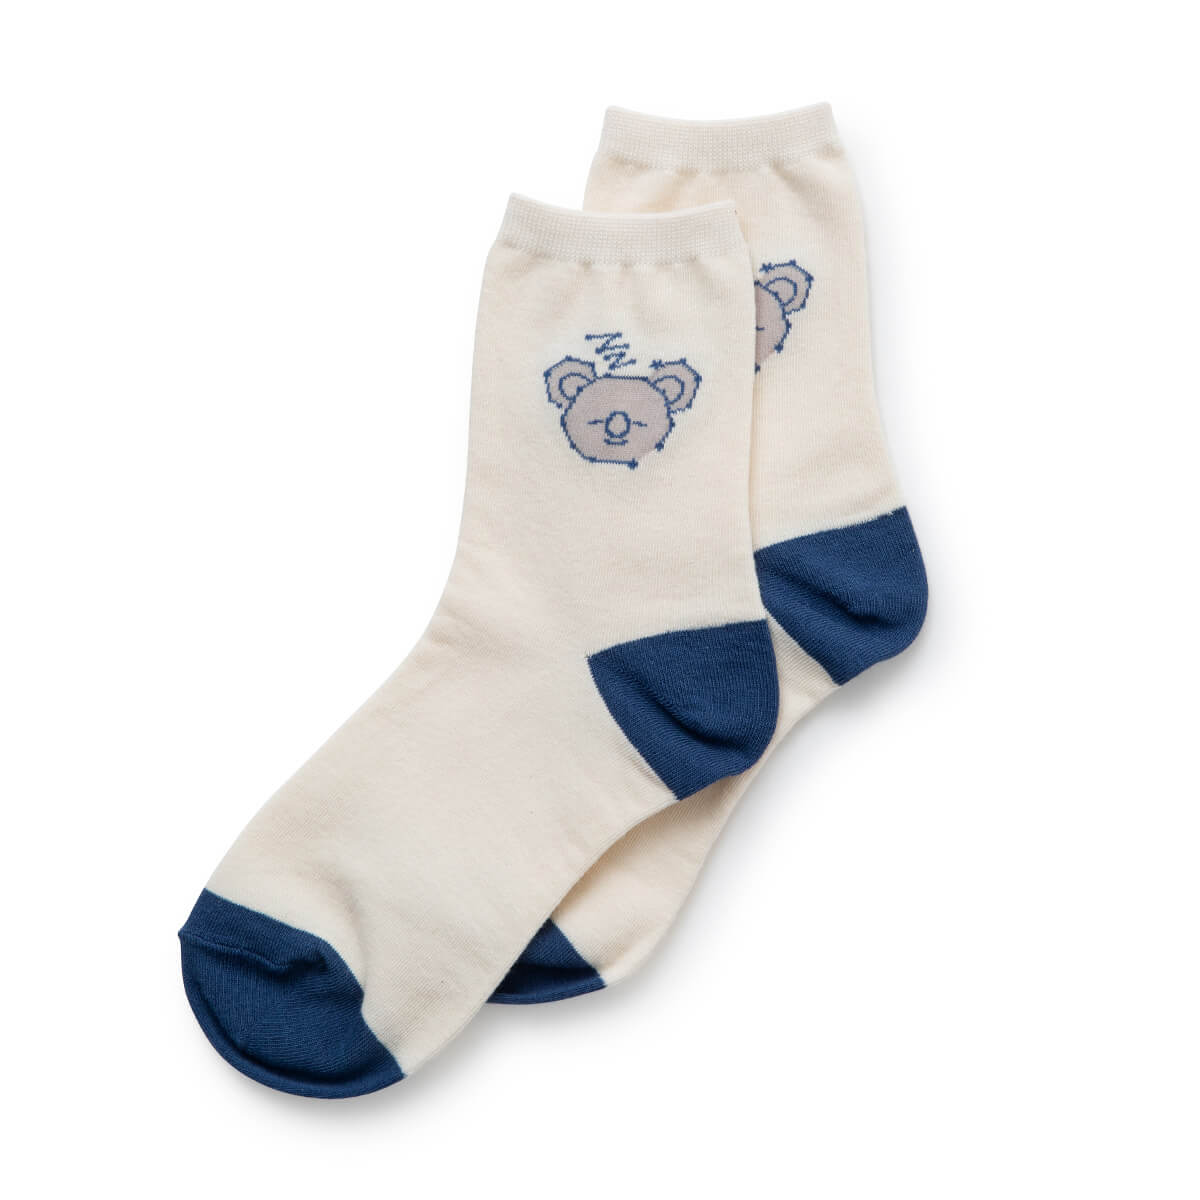 BT21 KOYA Universtar Adult Socks 23-27cm